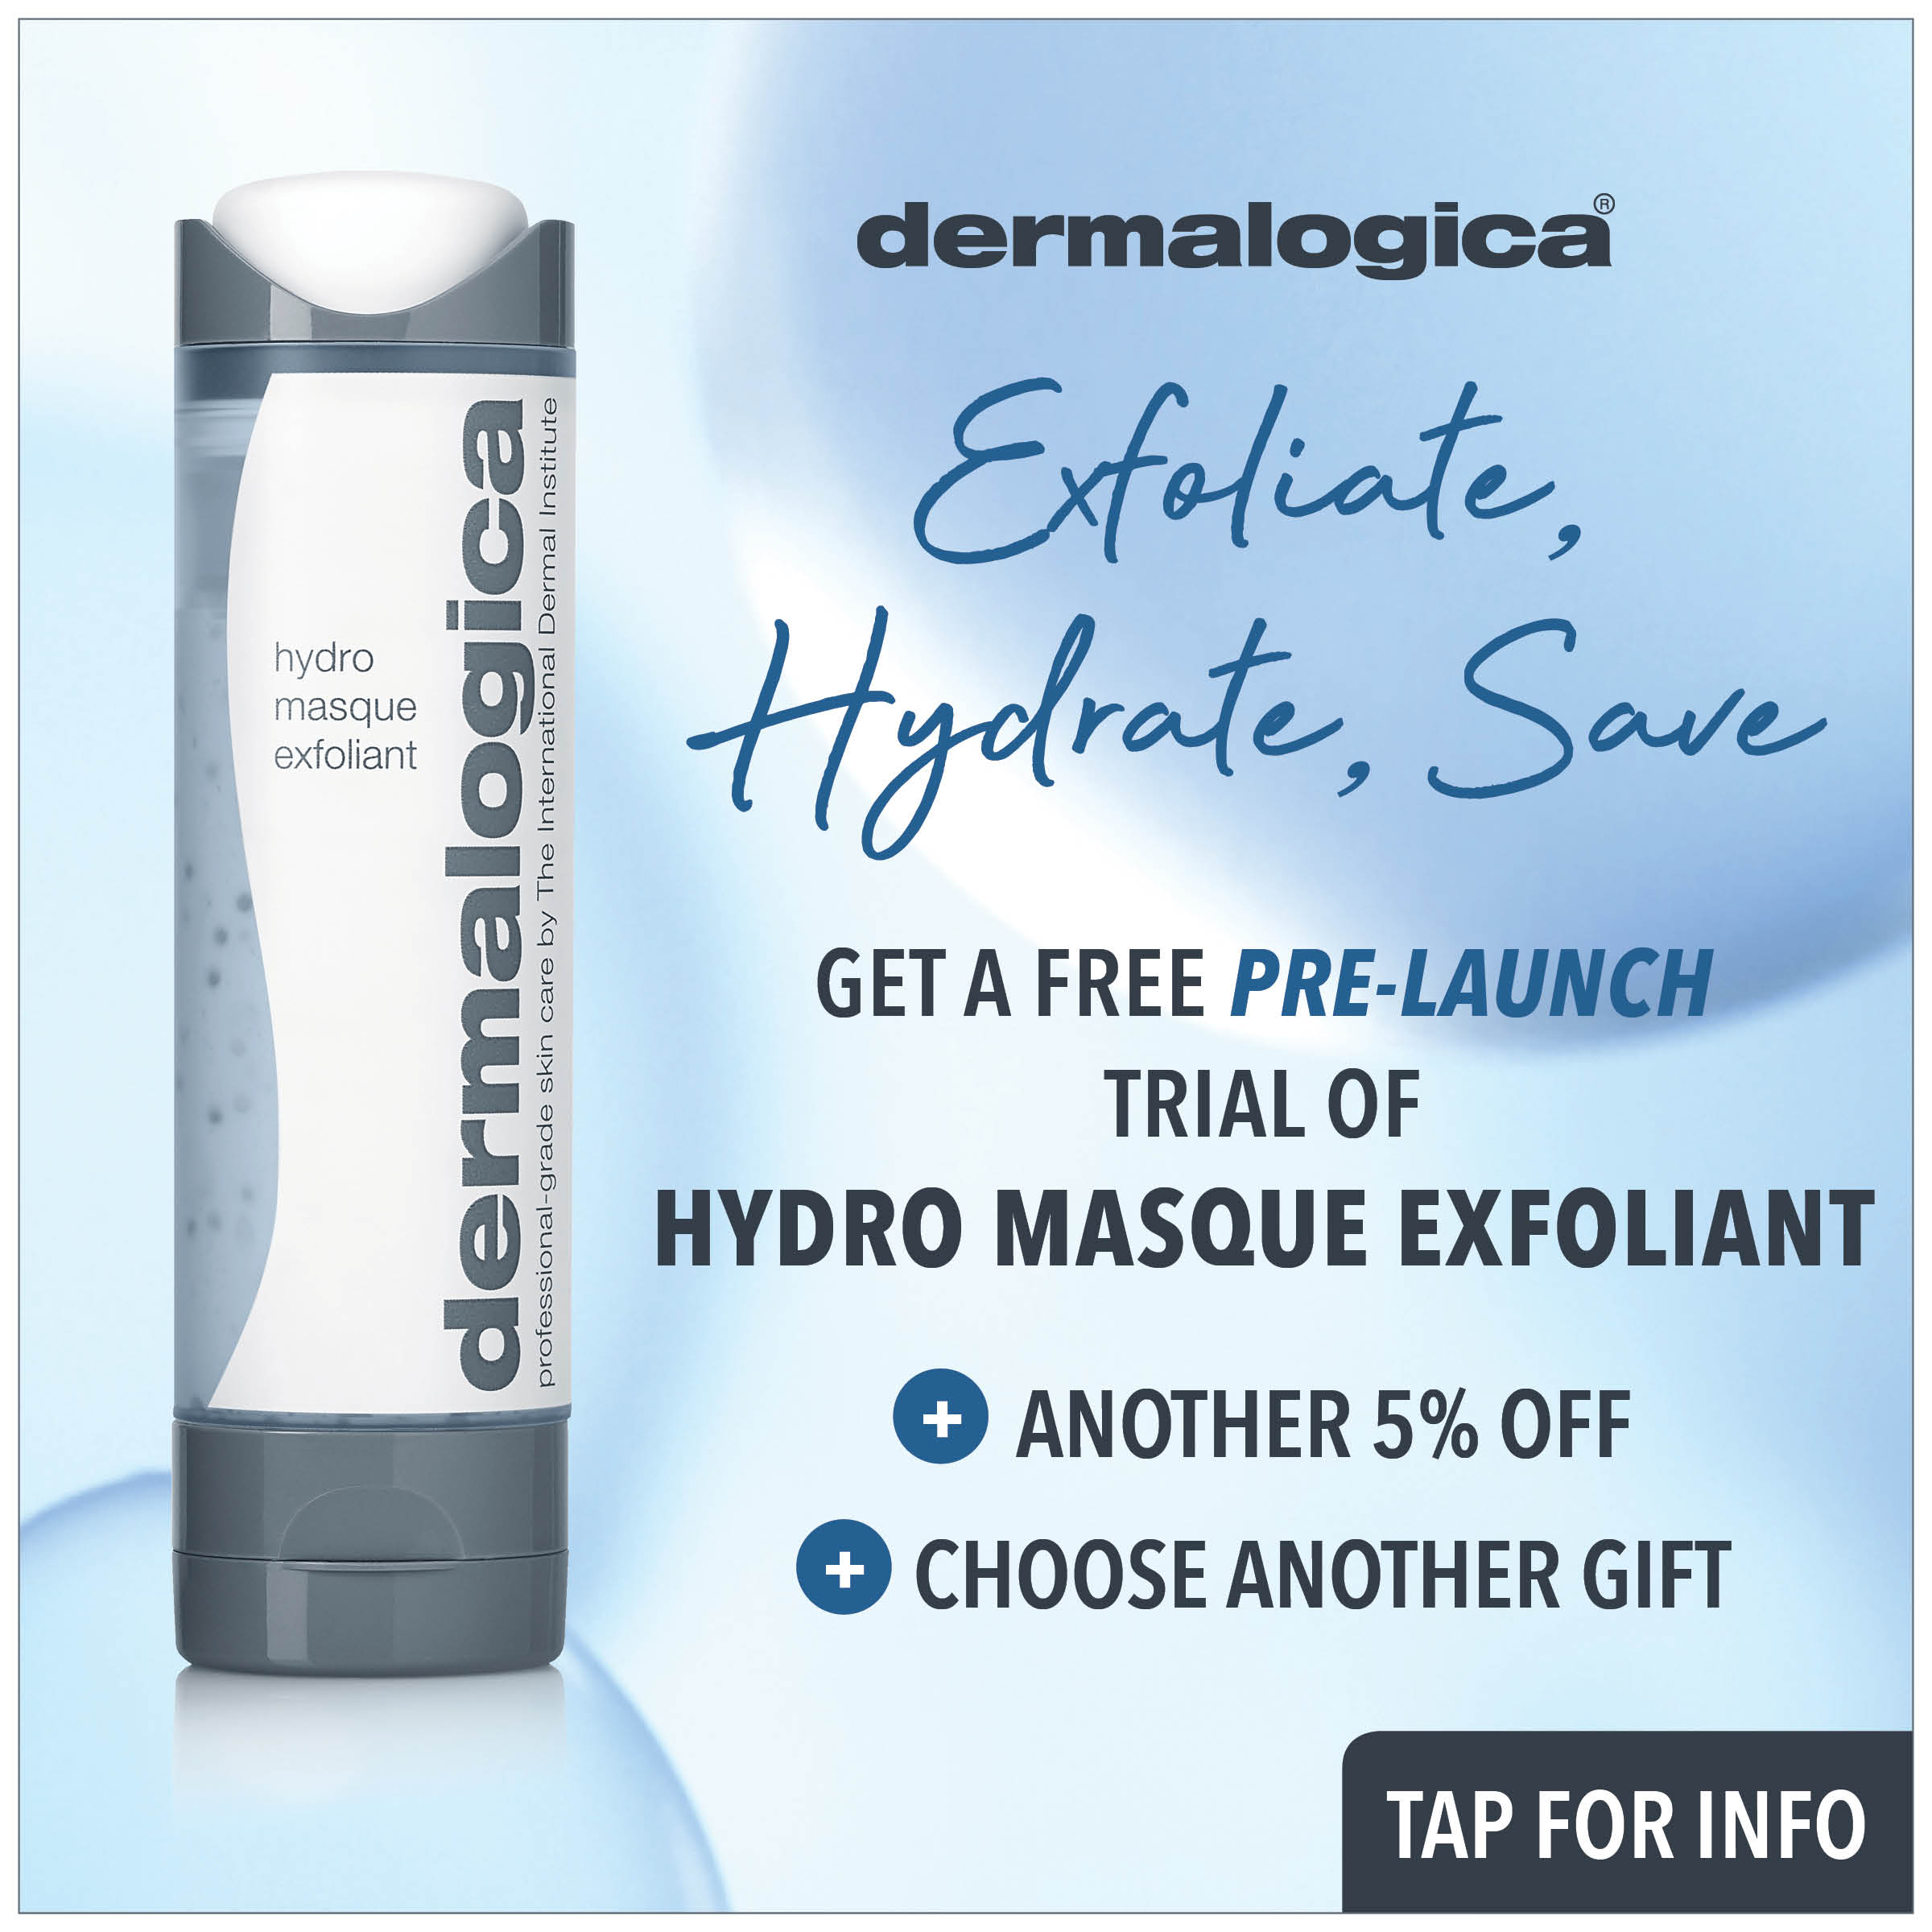 exfoliate, hydrate, save with prodermal